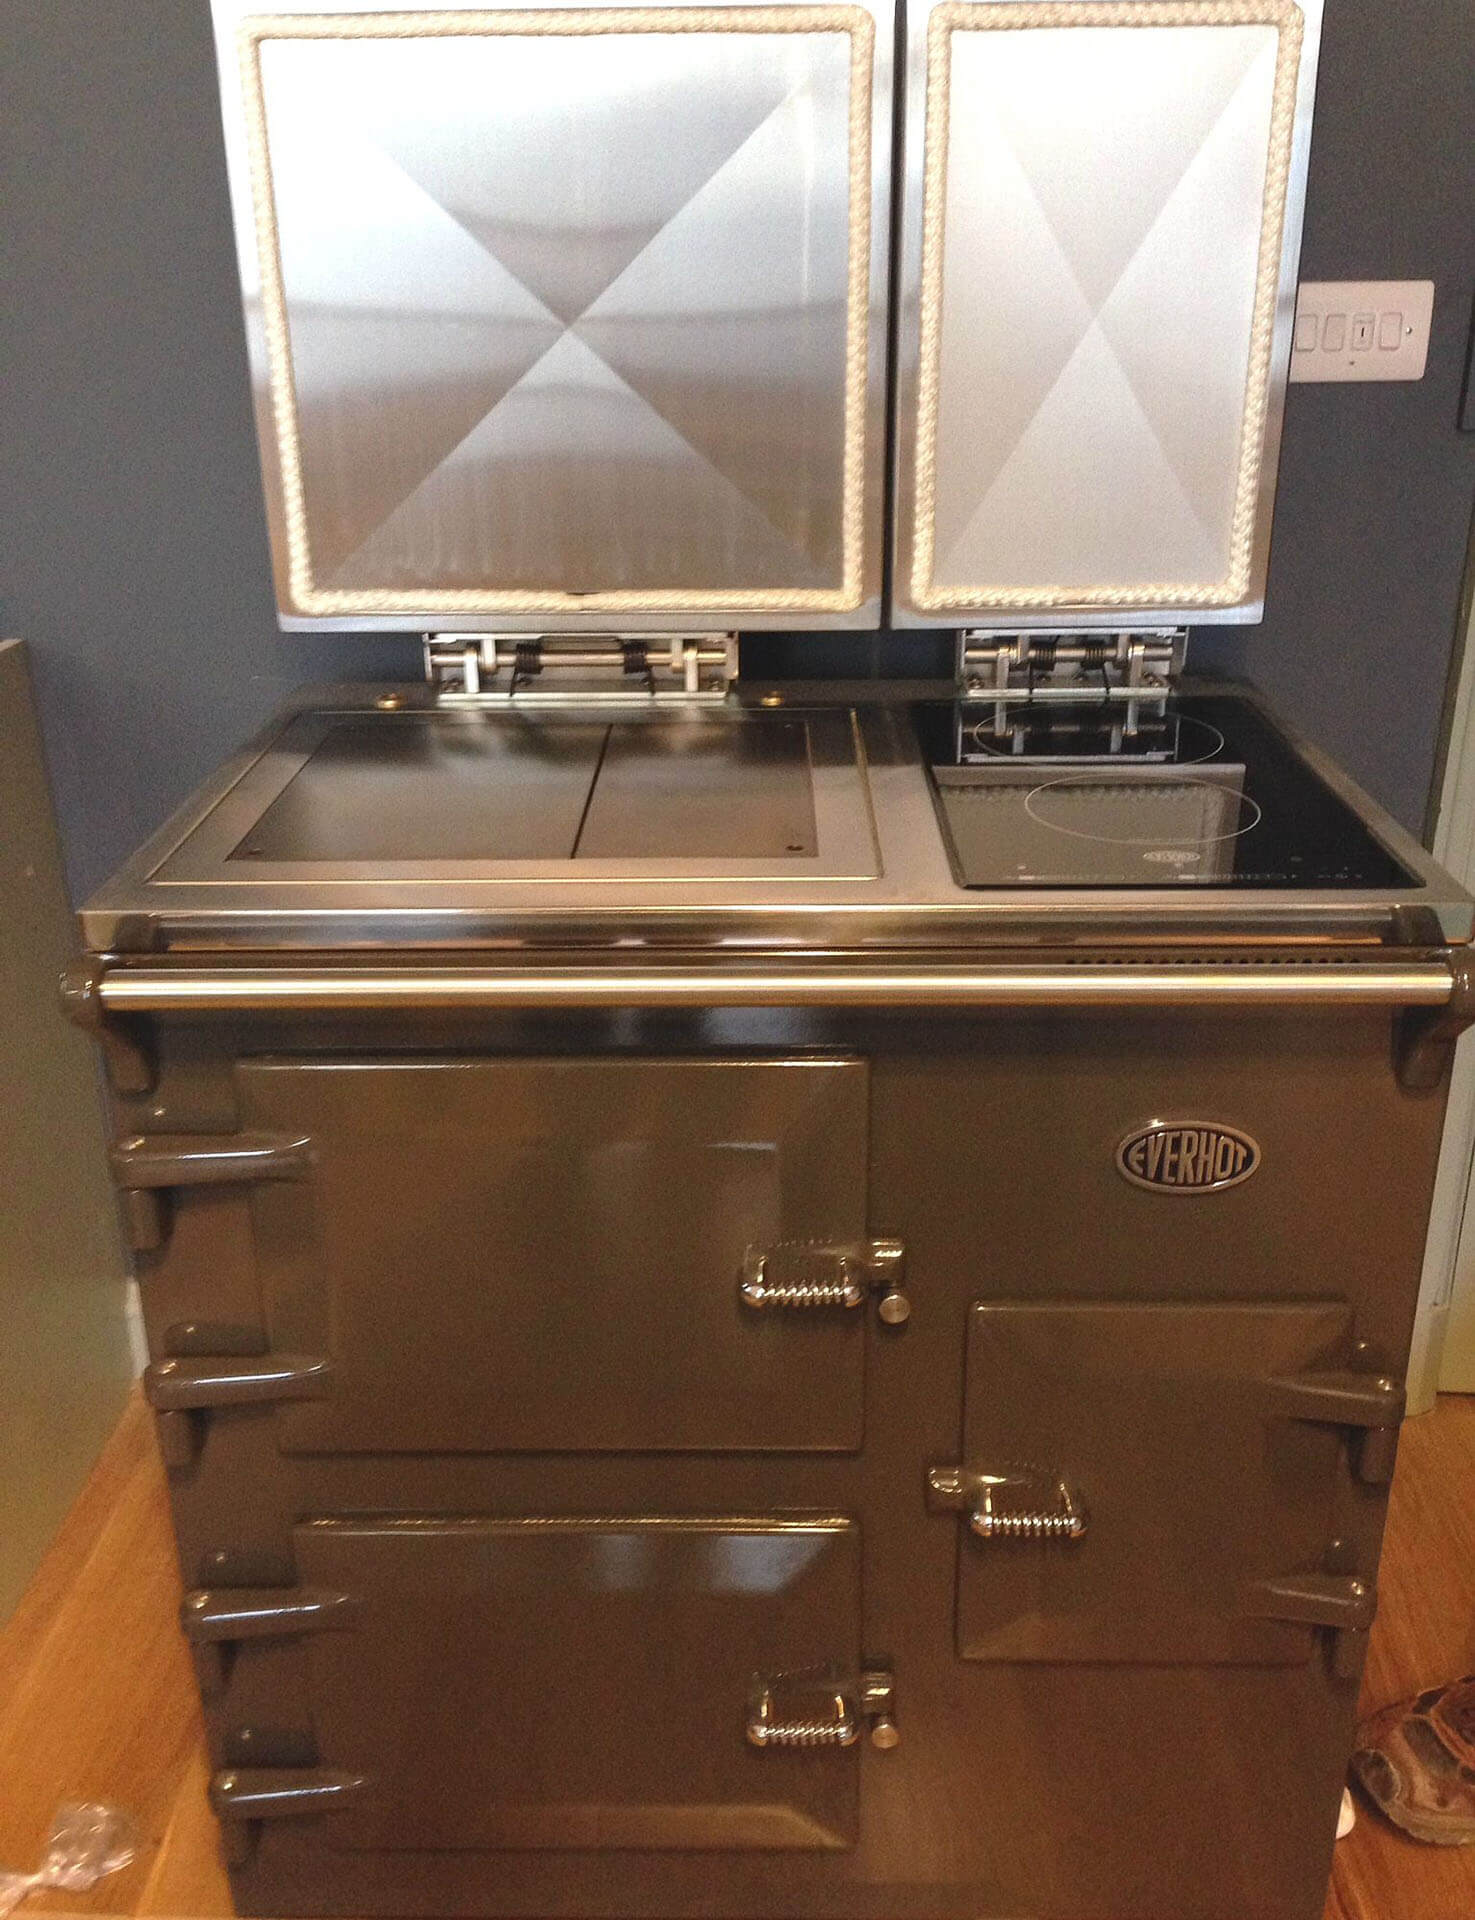 EVERHOT ELECTRIC RANGE COOKER